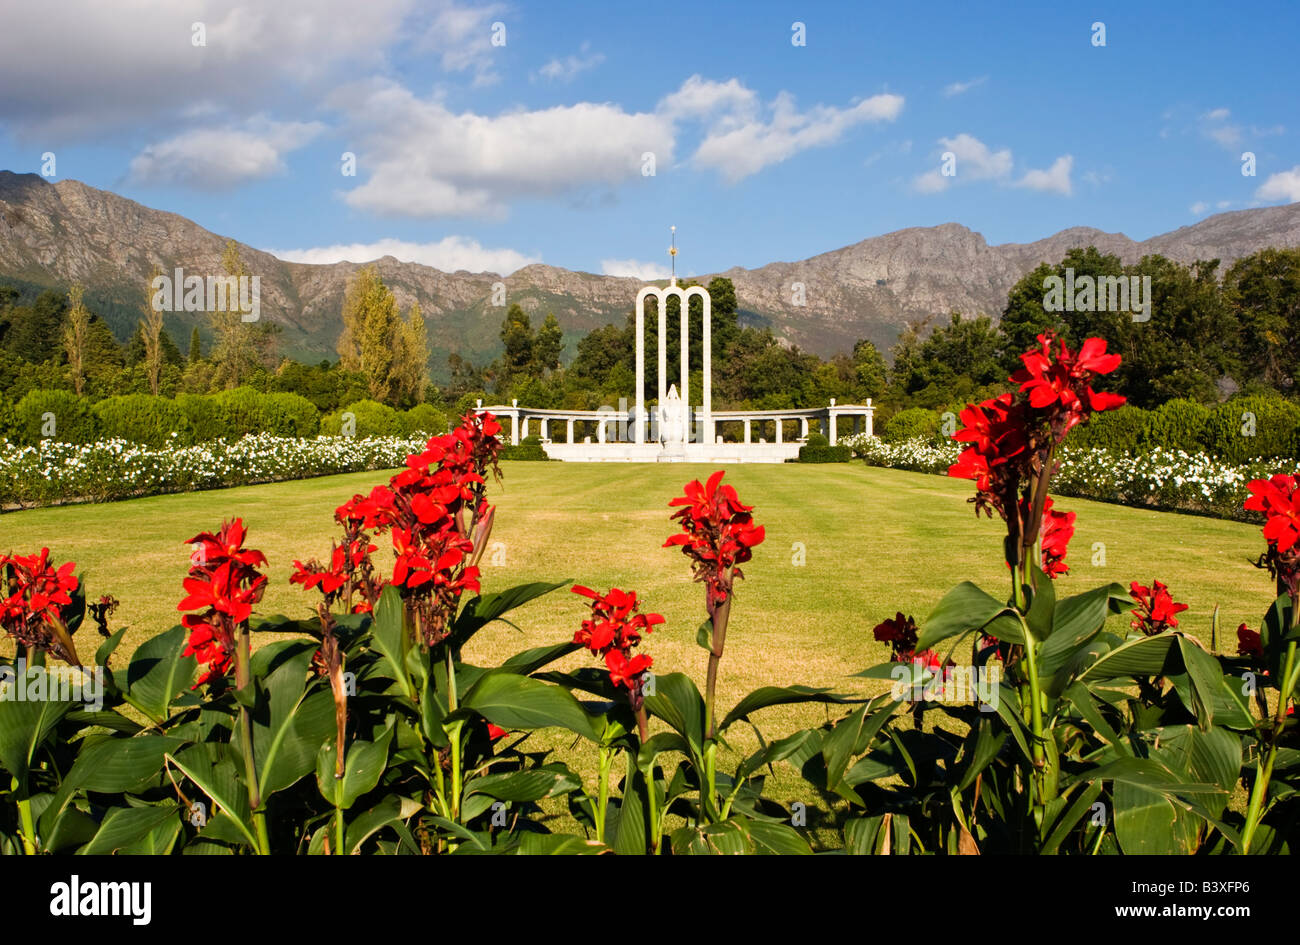 The Huguenot monument in Franschhoek, South Africa. - Stock Image